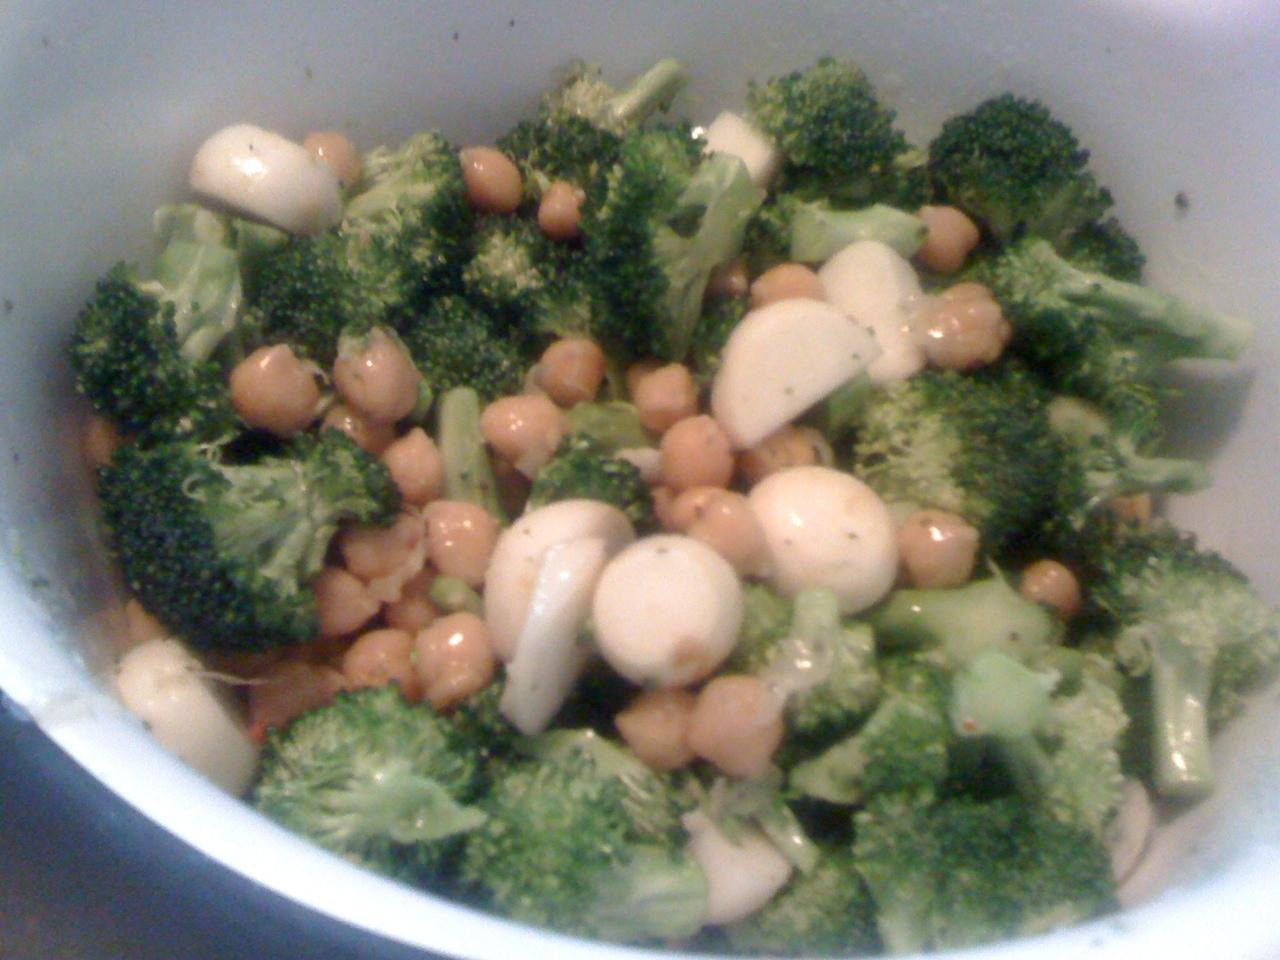 Roasted Broccoli With Chickpeas